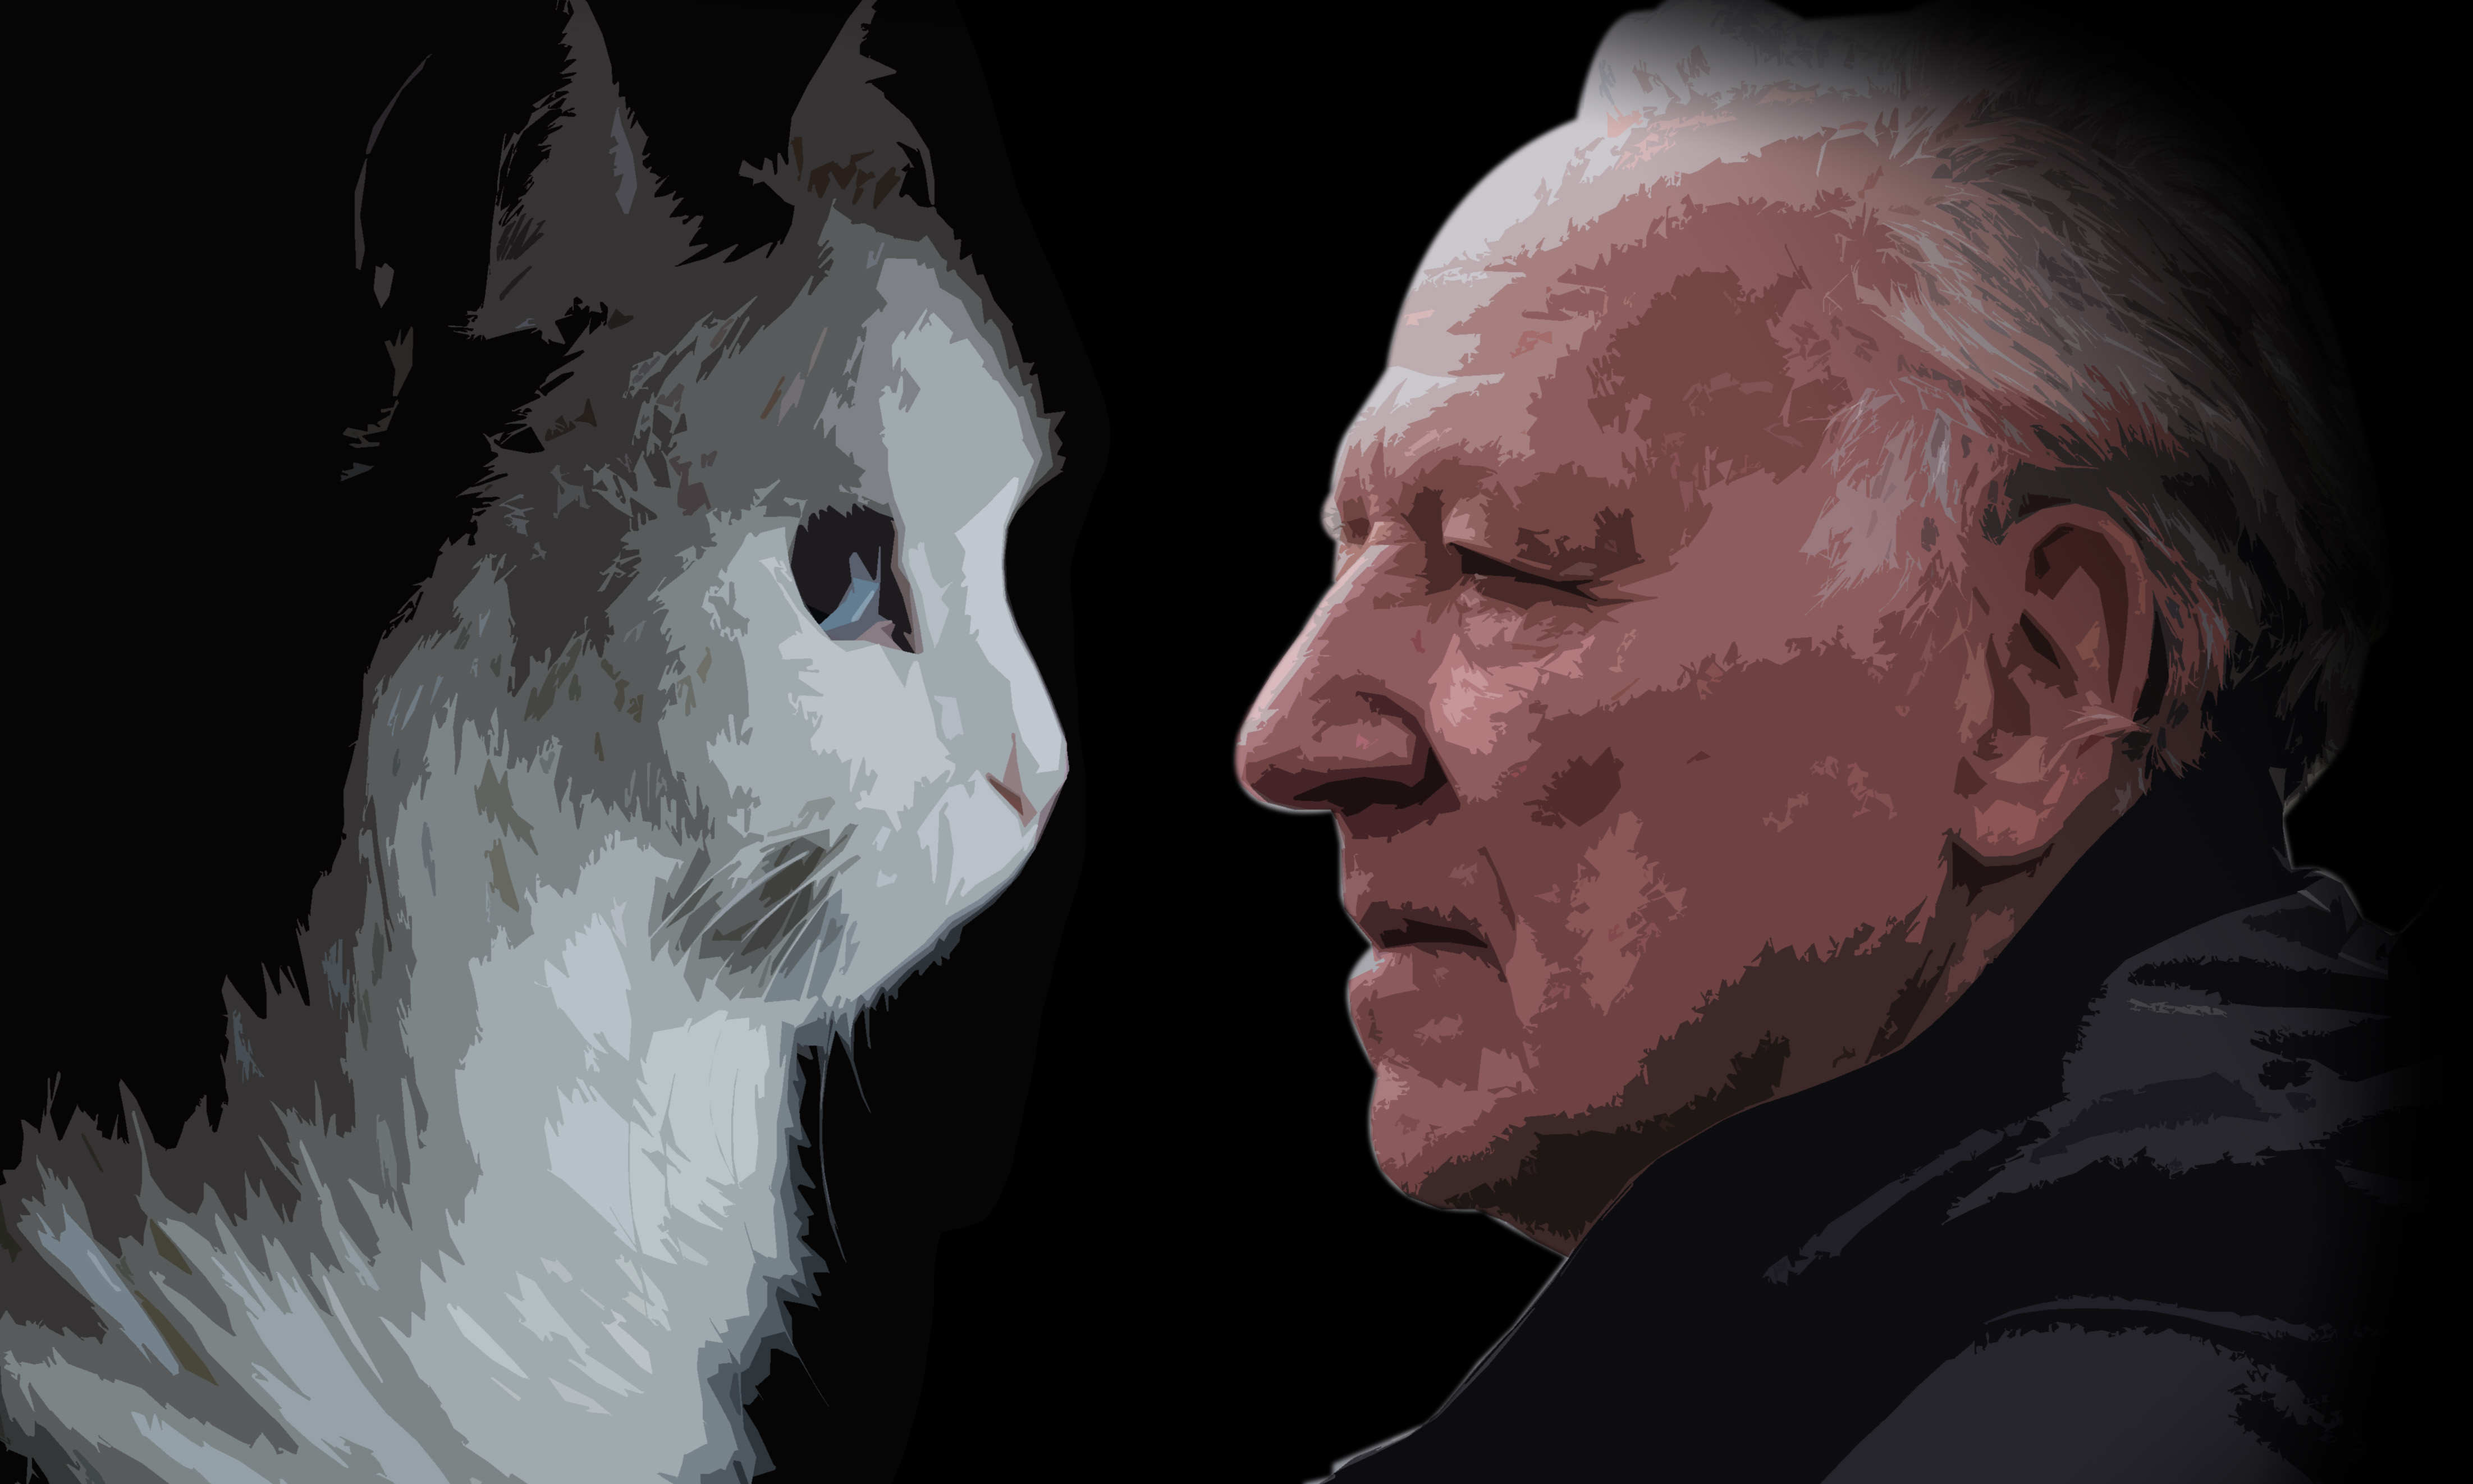 The muse and the master, Werner Herzog.